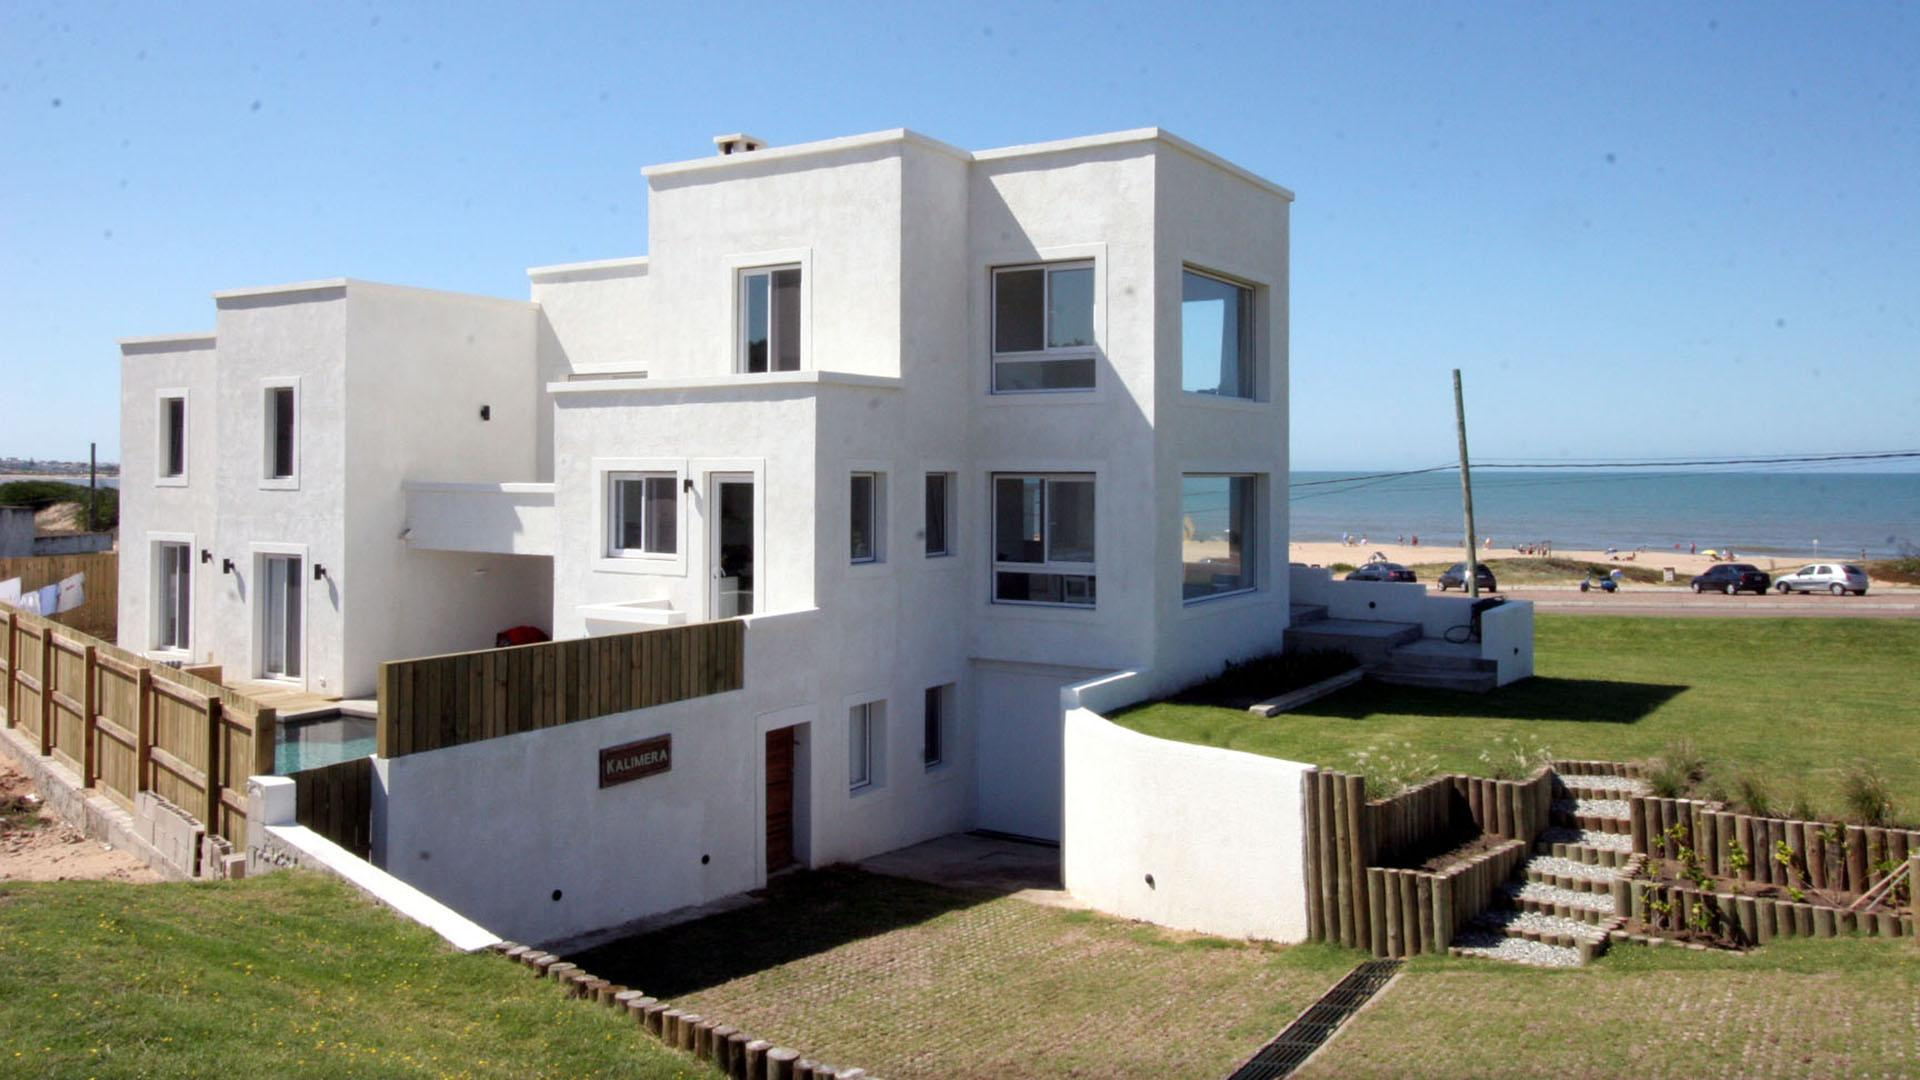 Ocean-View House Excellent Location located in La Barra, Punta del Este, Uruguay, listed by Curiocity Villas.